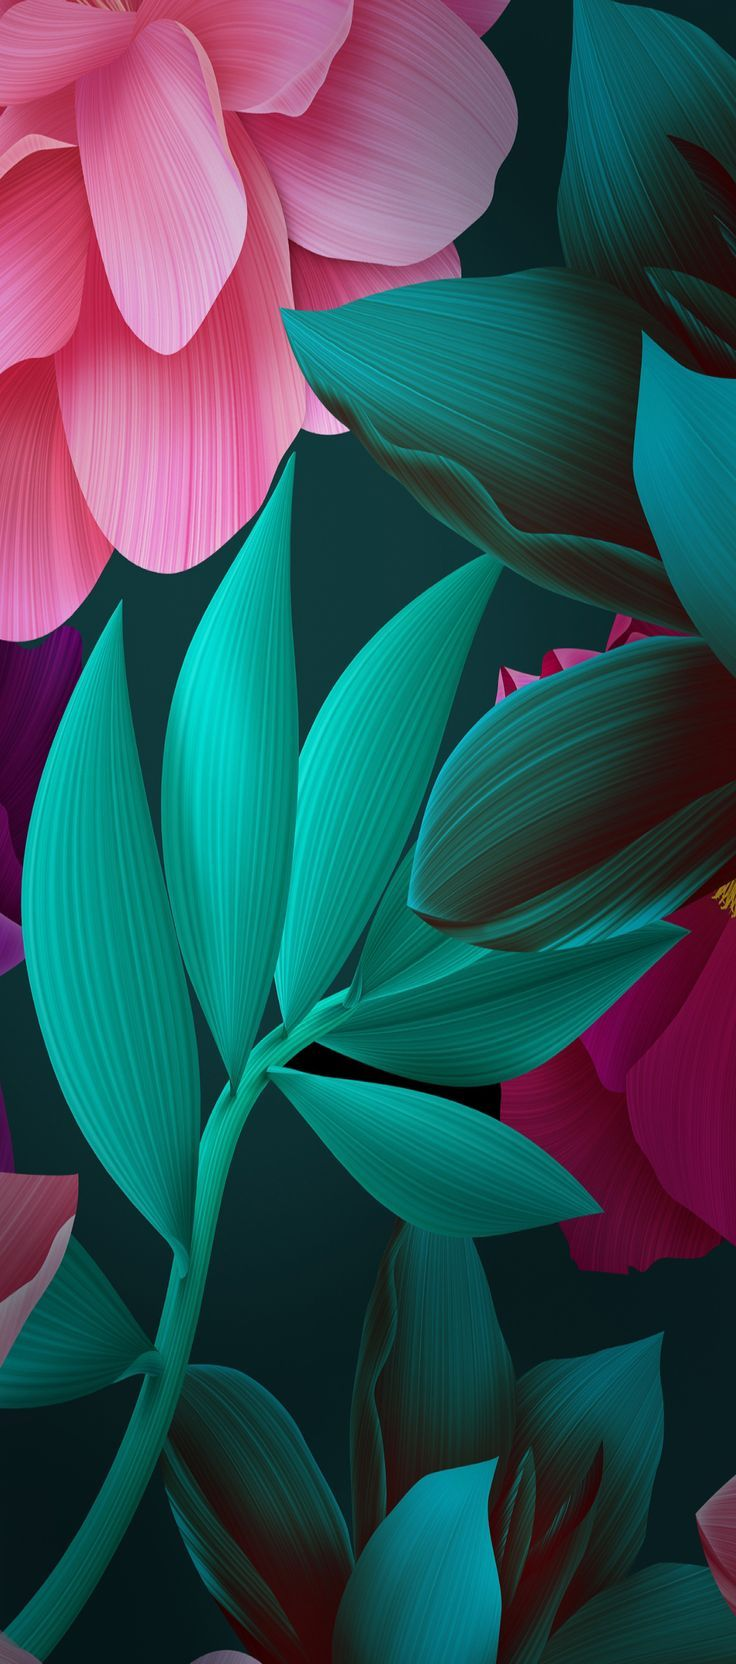 Permalink to Apple Flower Multicolor Wallpaper